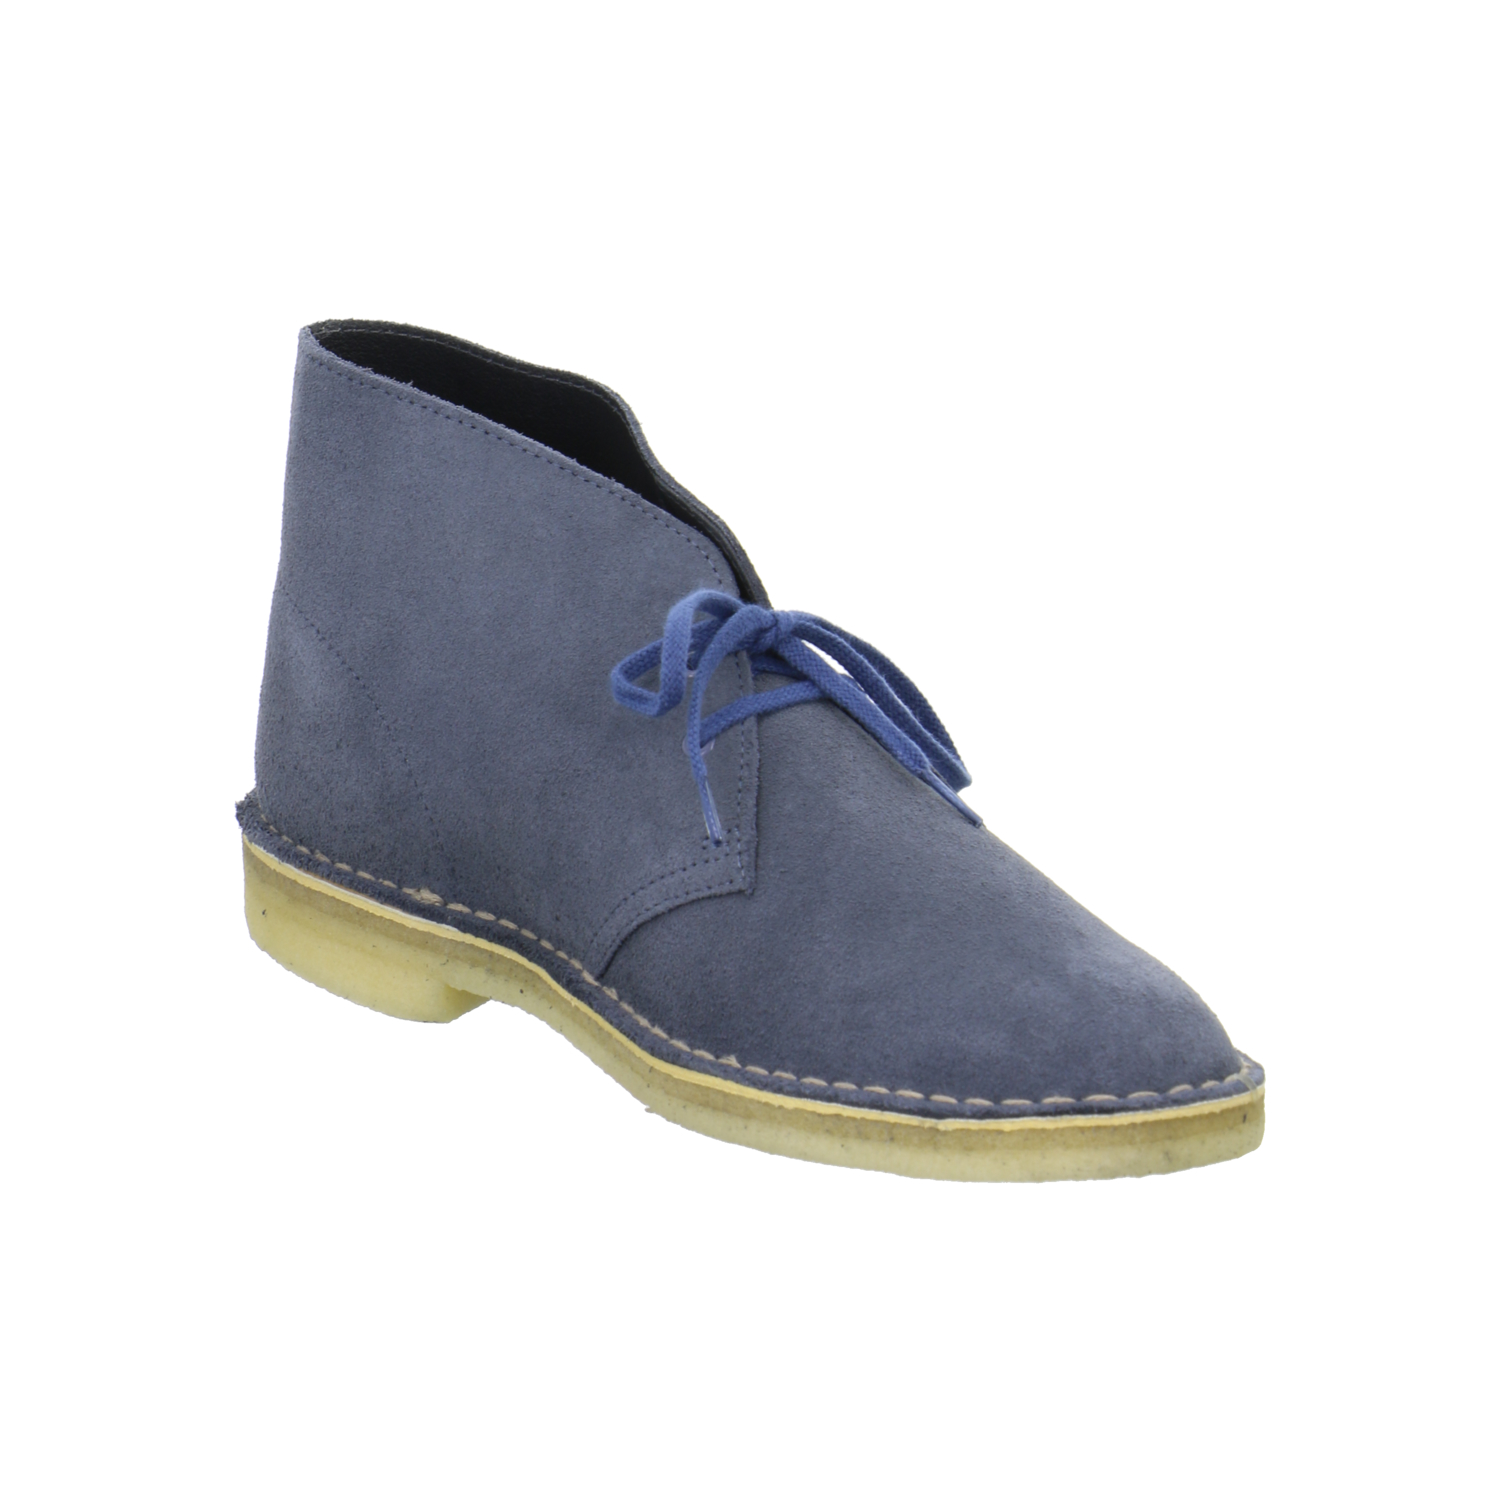 clarks originals desert boots herren rauleder blau 261068127 ebay. Black Bedroom Furniture Sets. Home Design Ideas